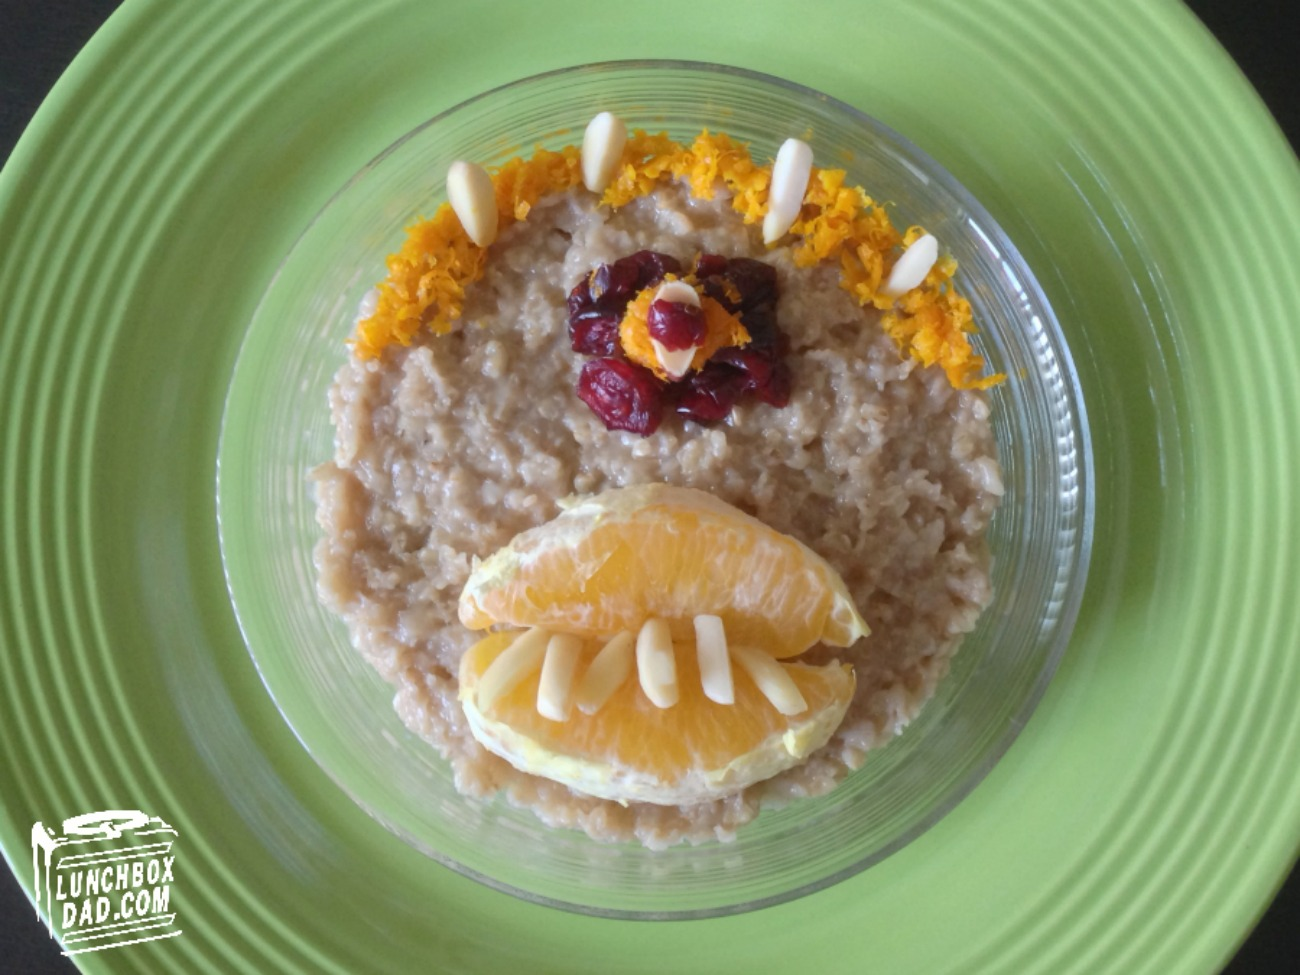 A Monsterous Bowl of Oatmeal #QuakerUp #ad